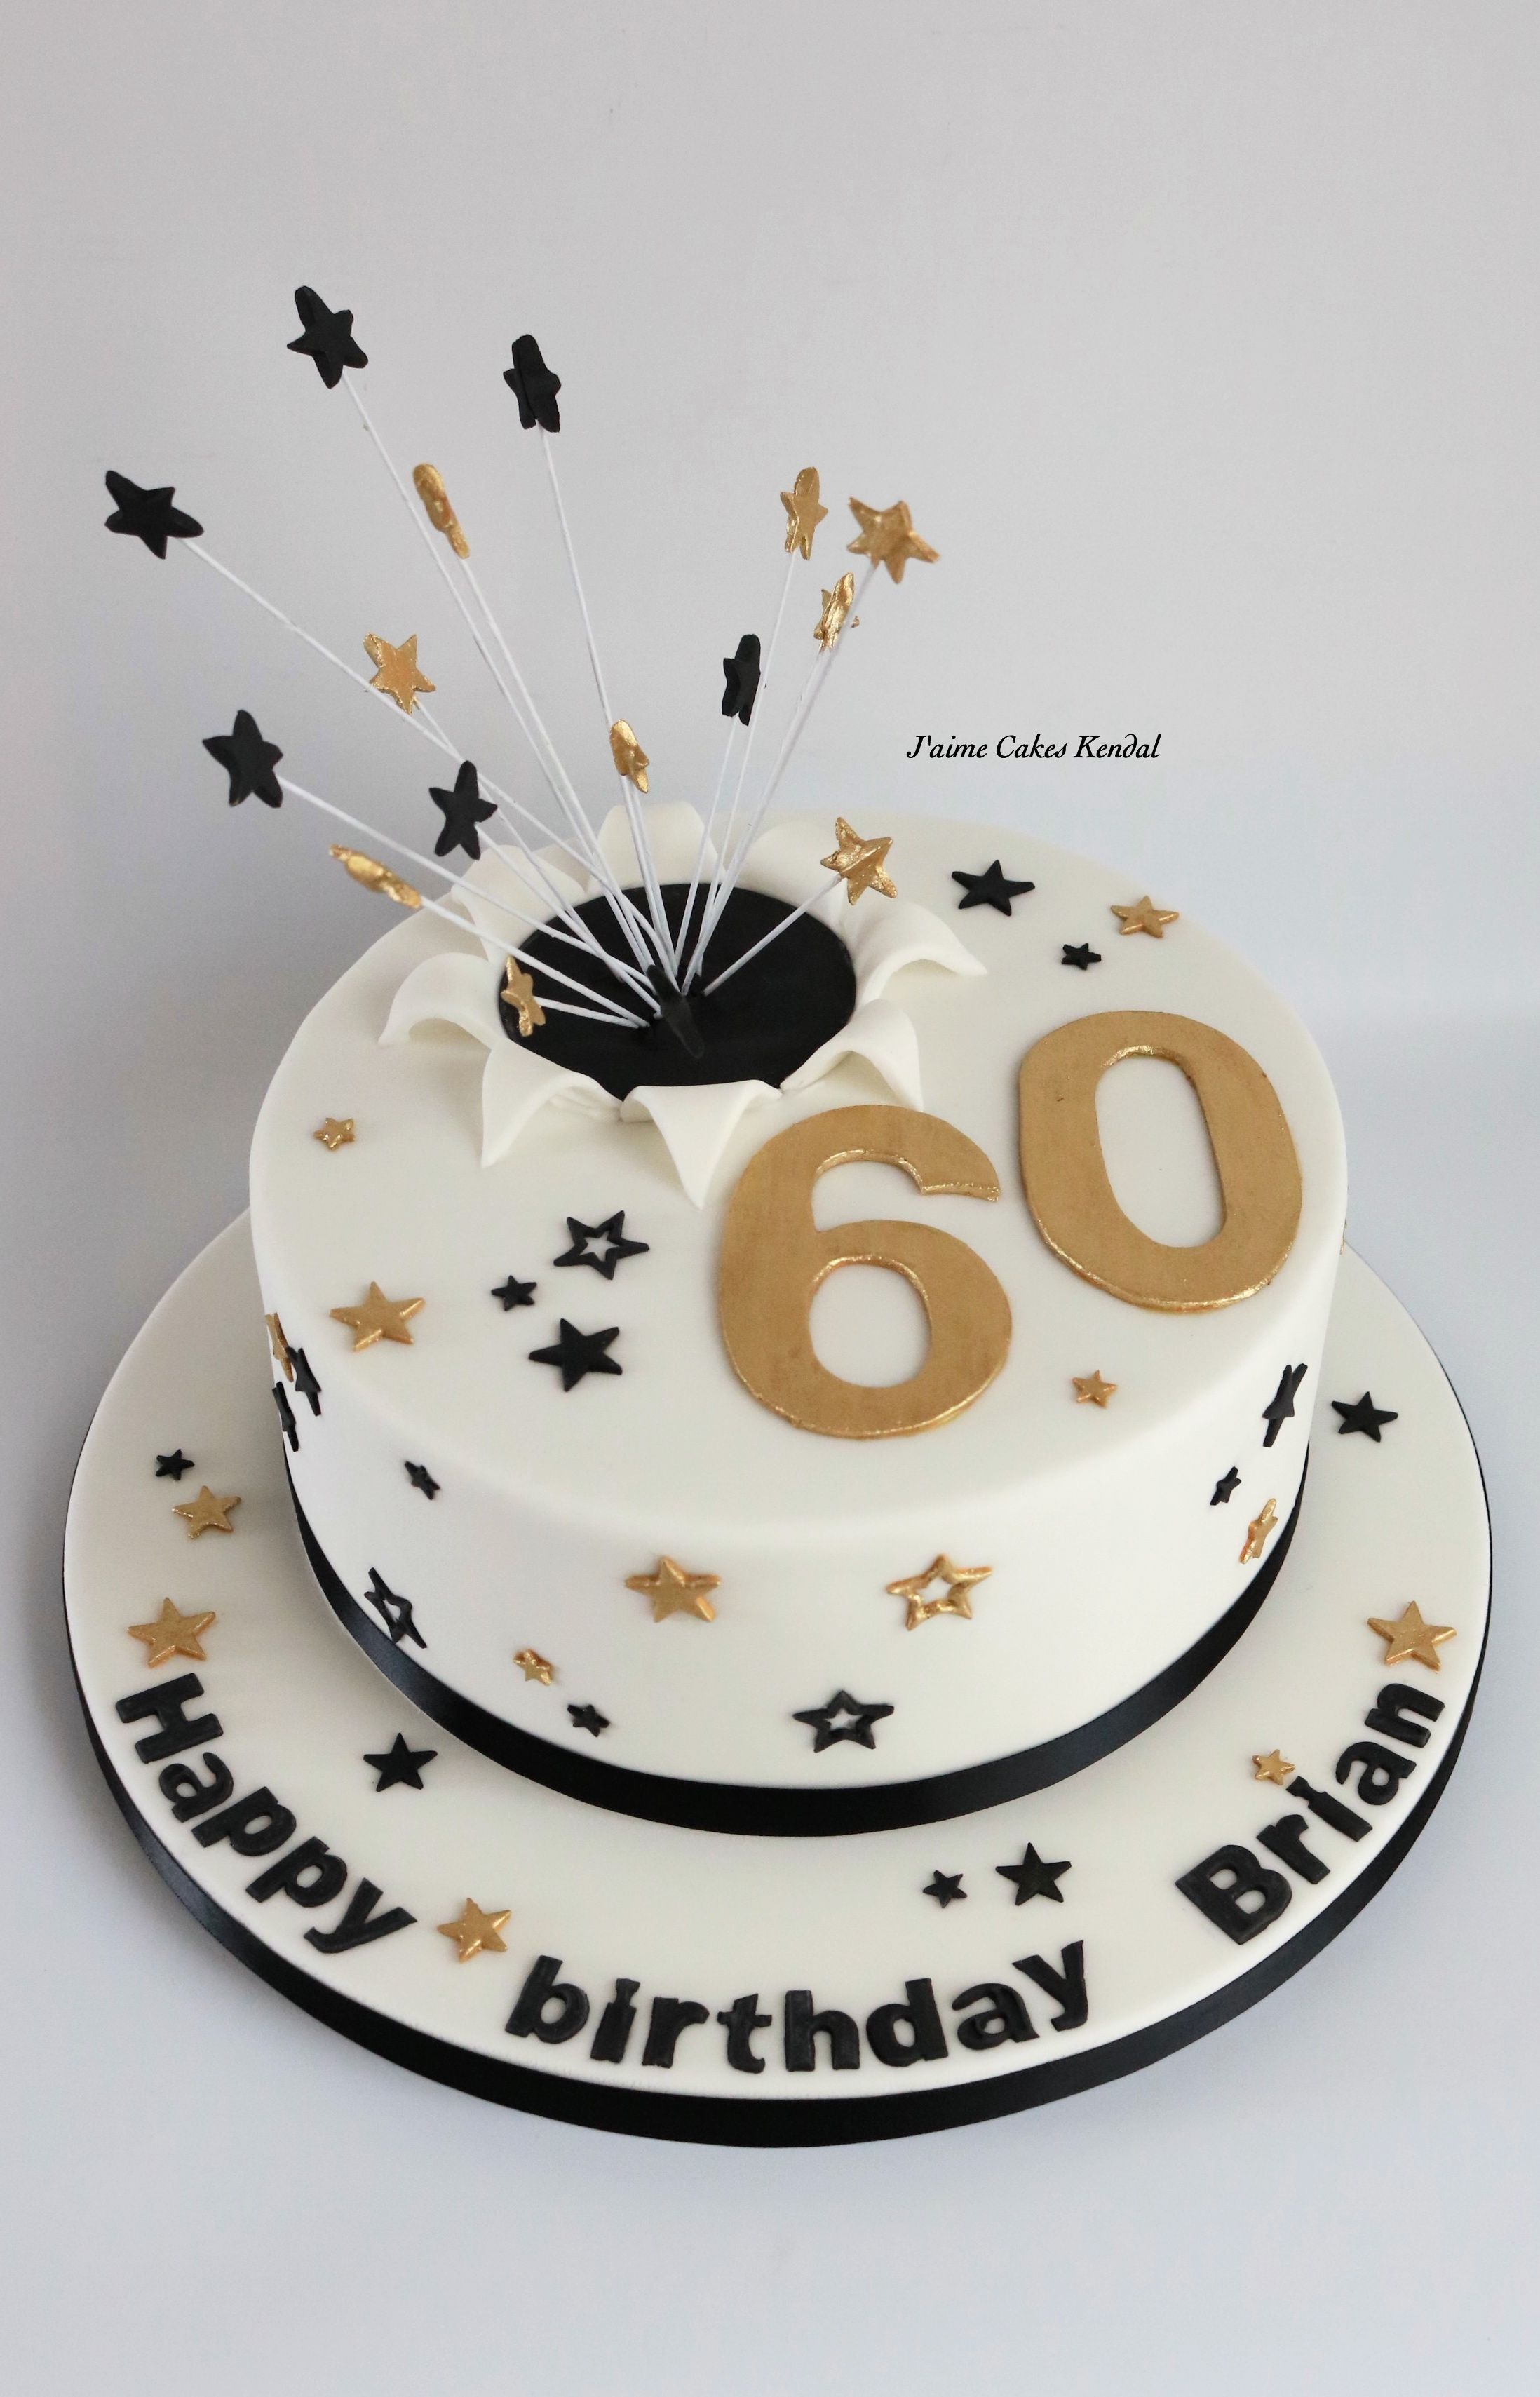 Pin by J'aime Cakes Kendal on Cakes for Him, Created by me! in